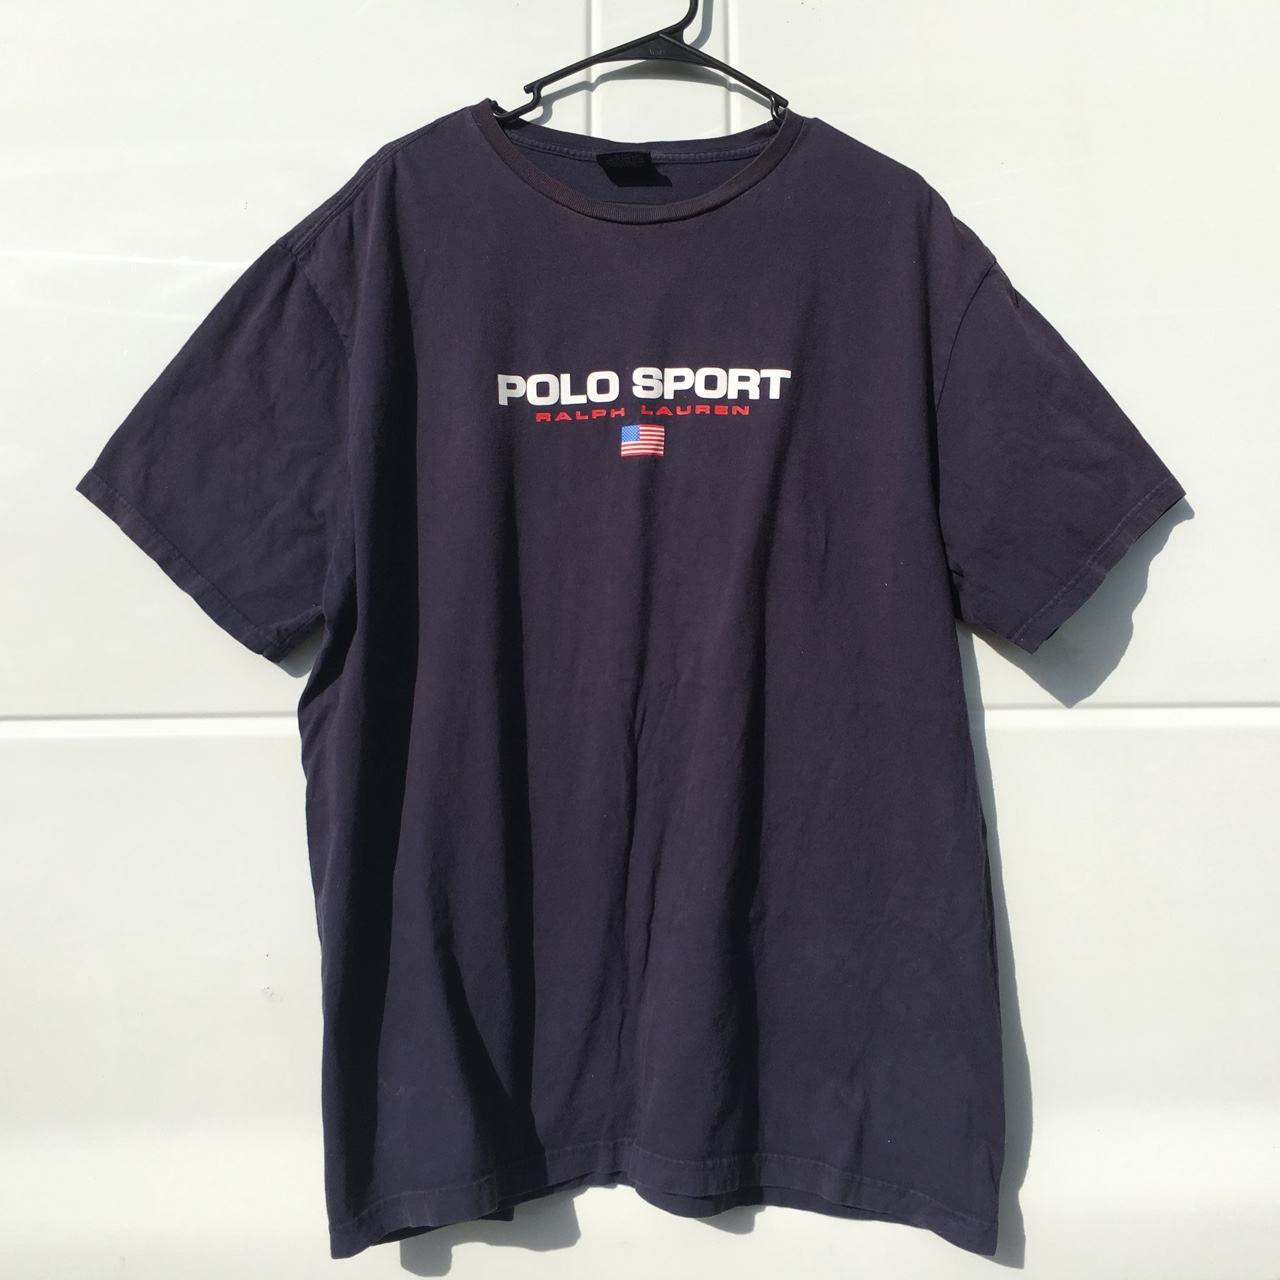 Polo sport t shirt features screen printed for Screen printed polo shirts